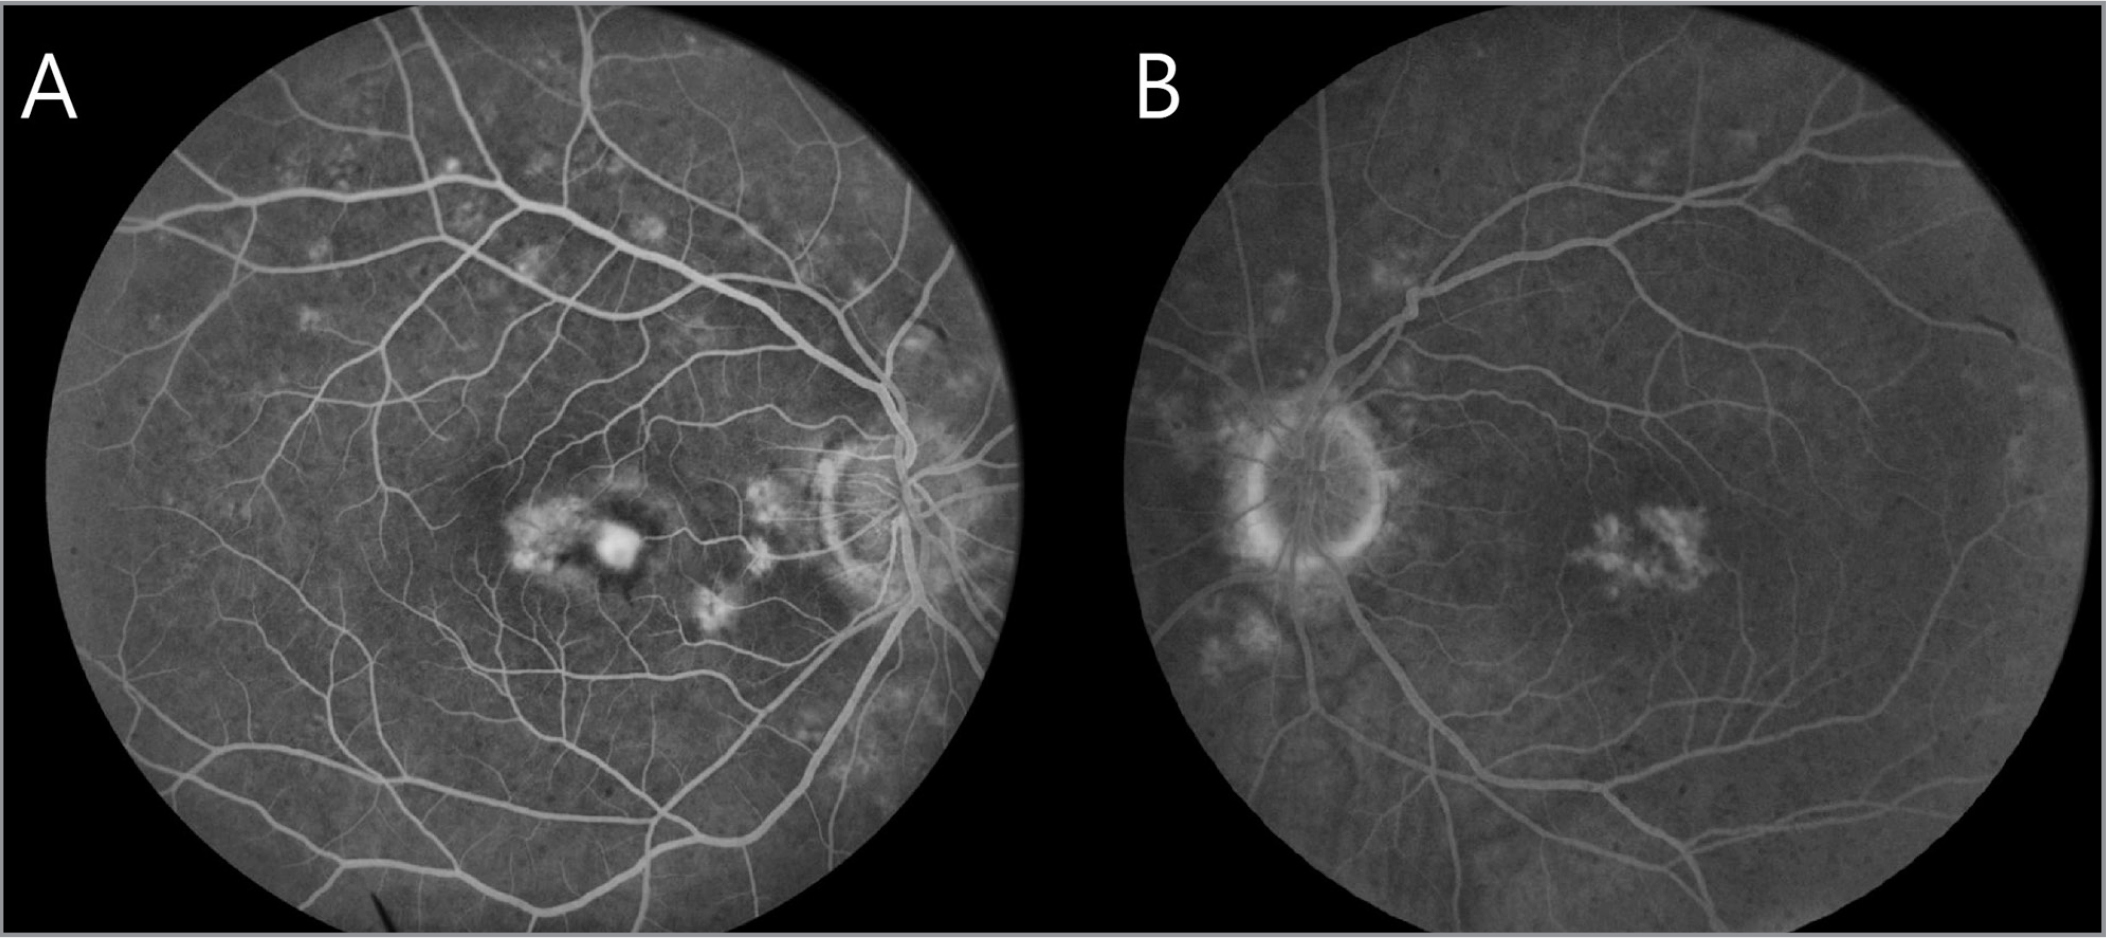 Right (A) and left (B) fluorescein angiography of Patient A demonstrating bilateral hyperfluorescent flecks and leakage from a choroidal neovascularization in the right eye in 2005 (A). (B) Window defect in the left eye.